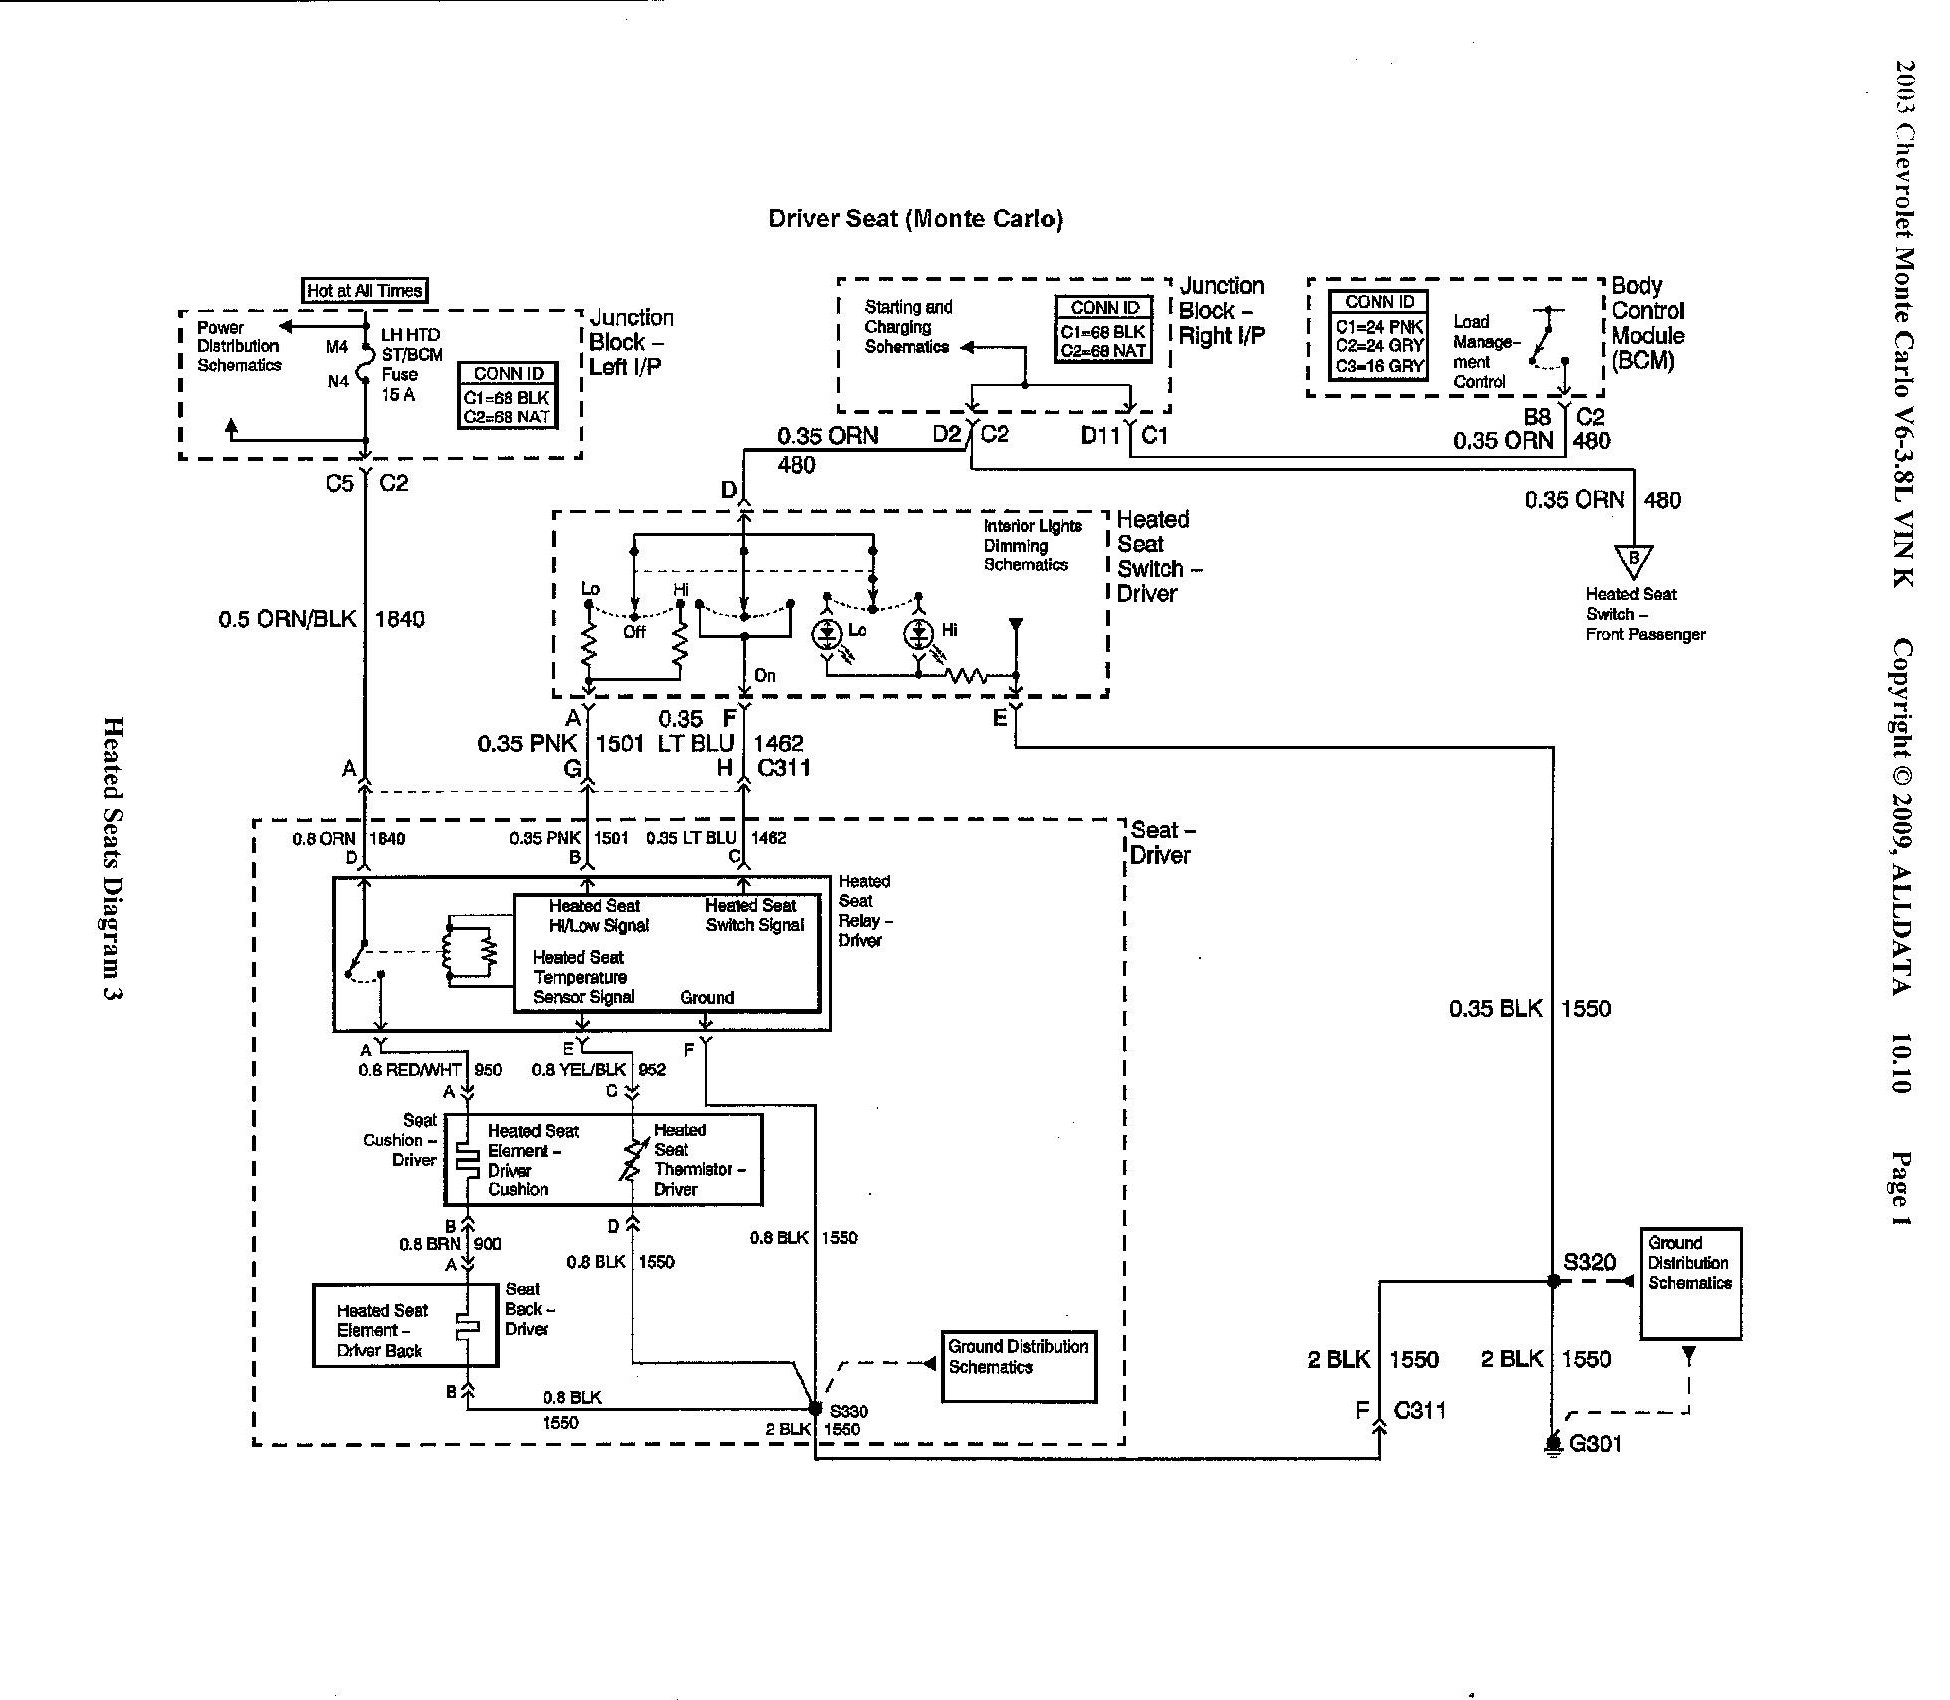 2001 Chevy Monte Carlo Radio Wiring Diagram Great Design Of 01 Fuse Box 2003 Free Engine Image Pontiac Sunfire Factory